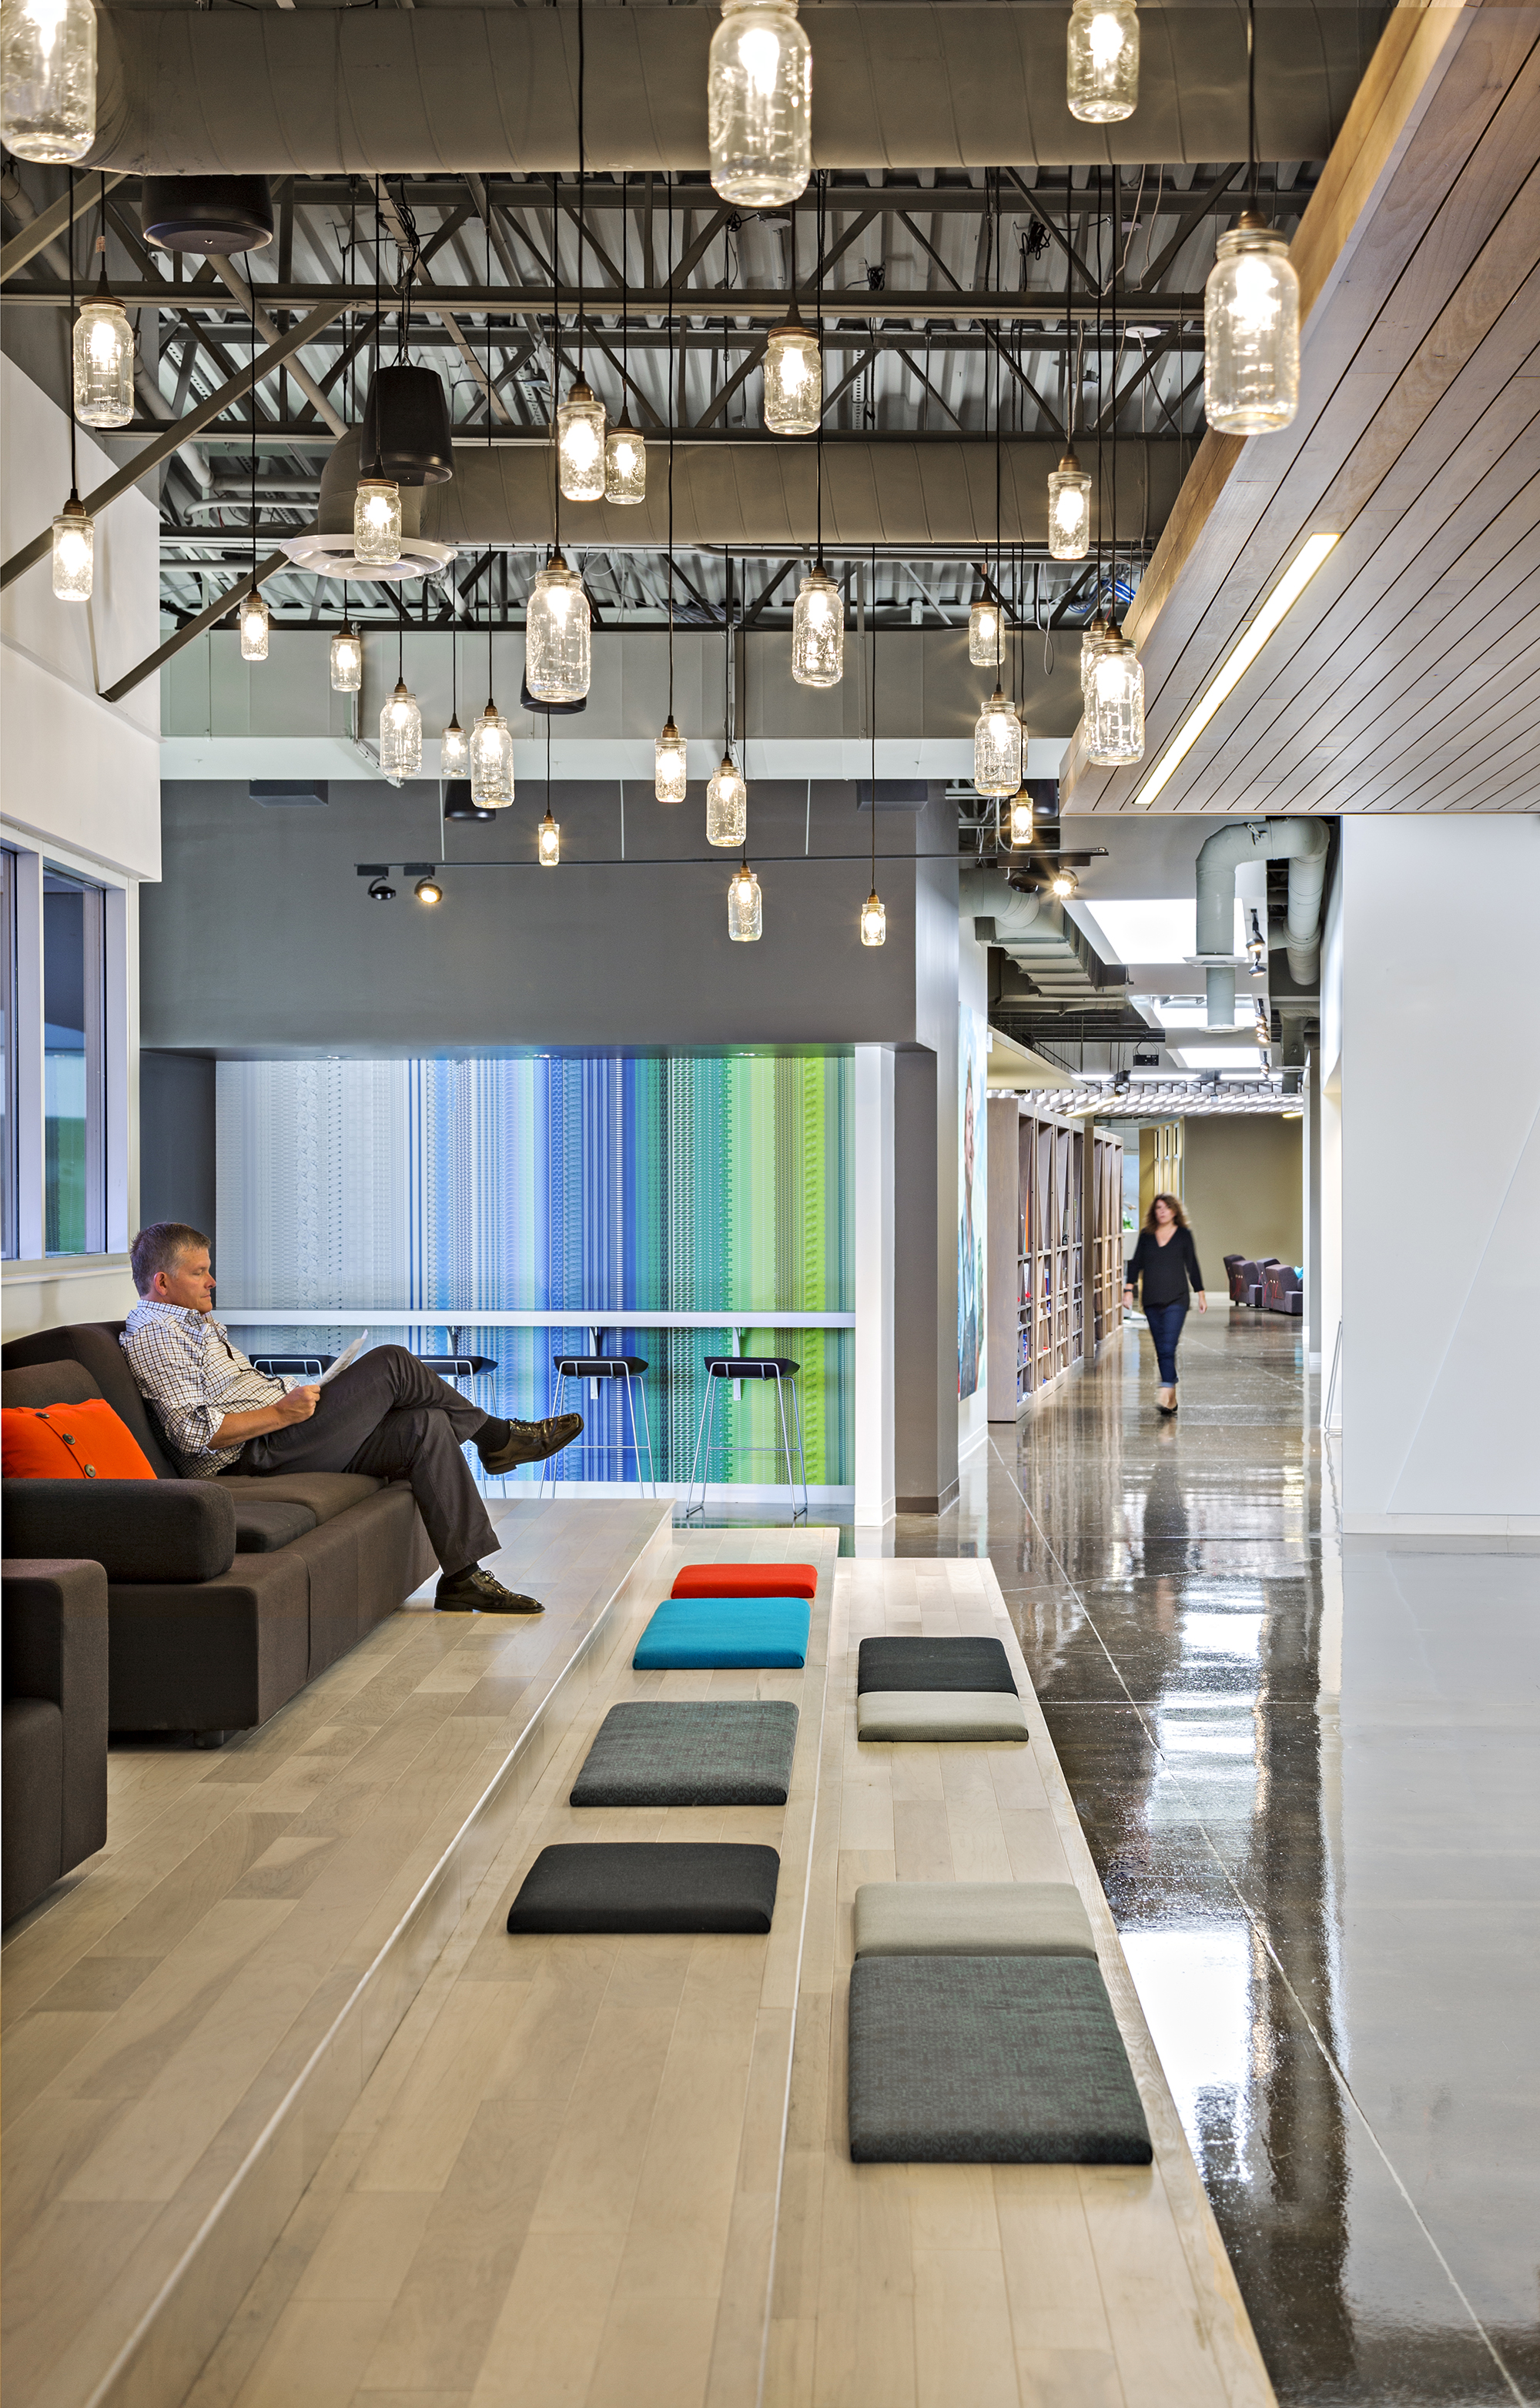 It Then Explores Jardenu0027s Headquarters, And How Their Move To Fishers Was  The Perfect Opportunity To Bring Staff Together With An Open Office Design.